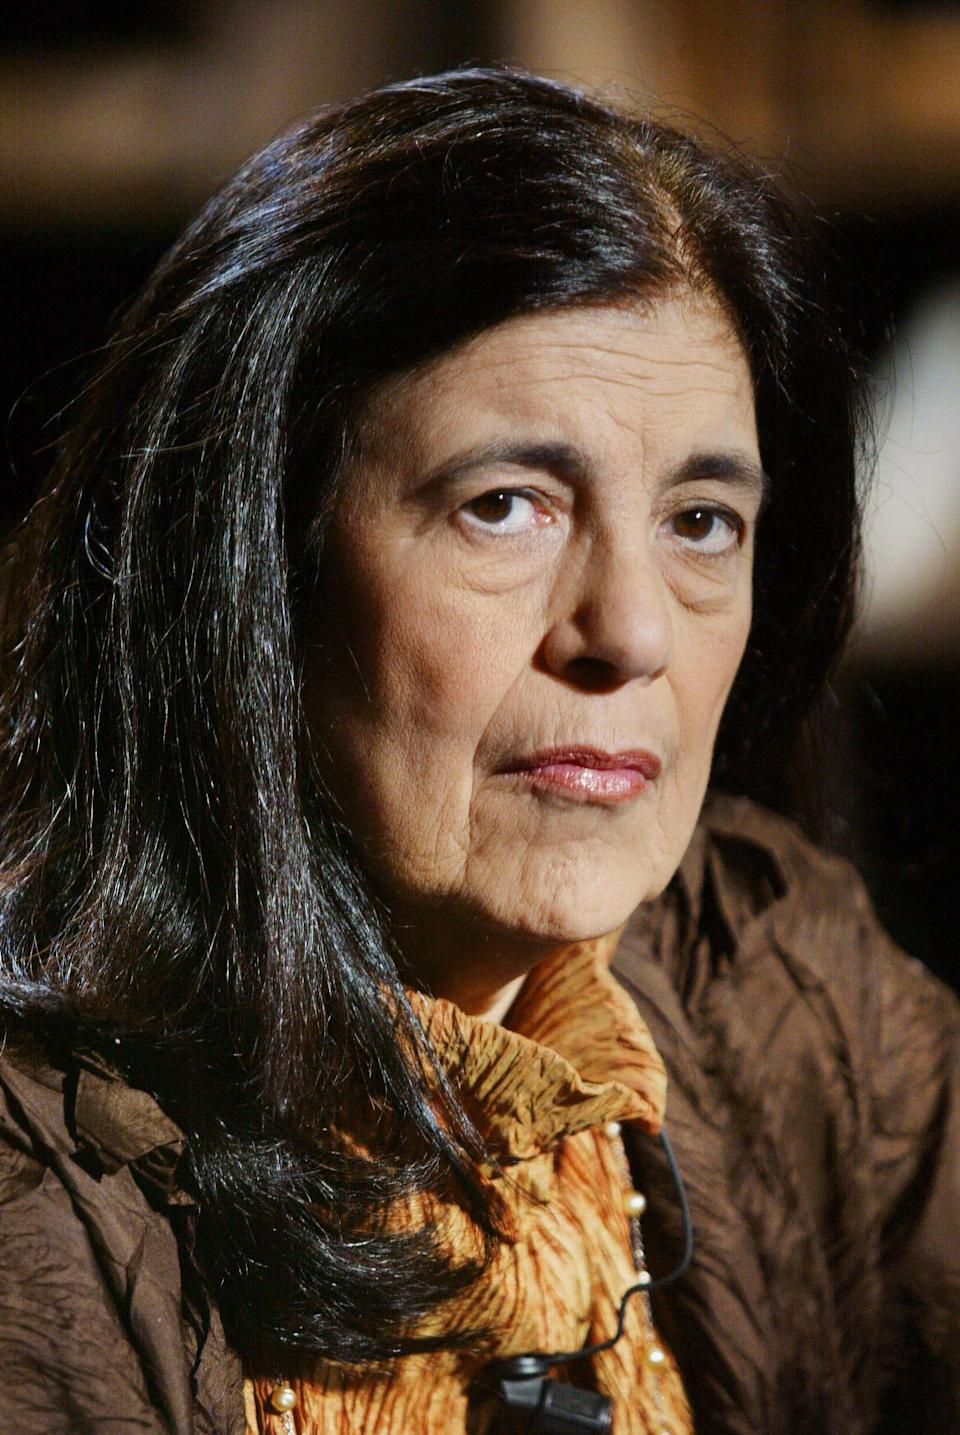 """Susan Sontag's 1964 essay """"Notes on 'Camp'"""" helped explain the term """"camp"""" to journalist Amelia Abraham (and, obviously, many others)."""